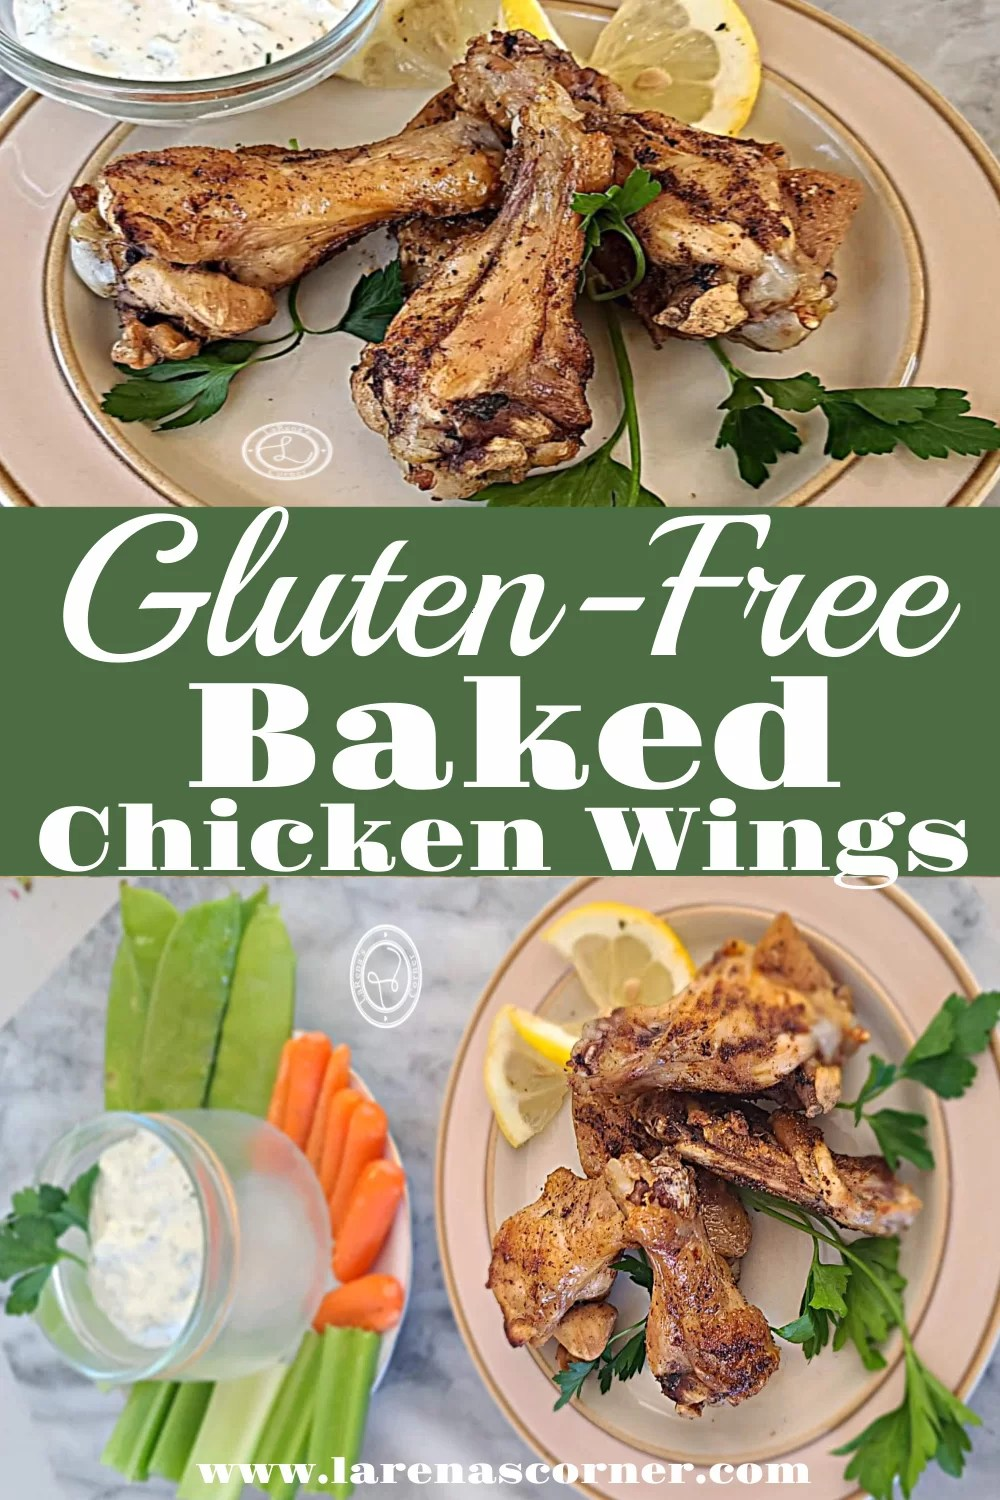 Gluten-Free Baked Chicken Wings. 2 pictures. One with chicken wings on a plate with veggies and ranch off to the side. One picture of 3 three wings on a plate with veggies and ranch.